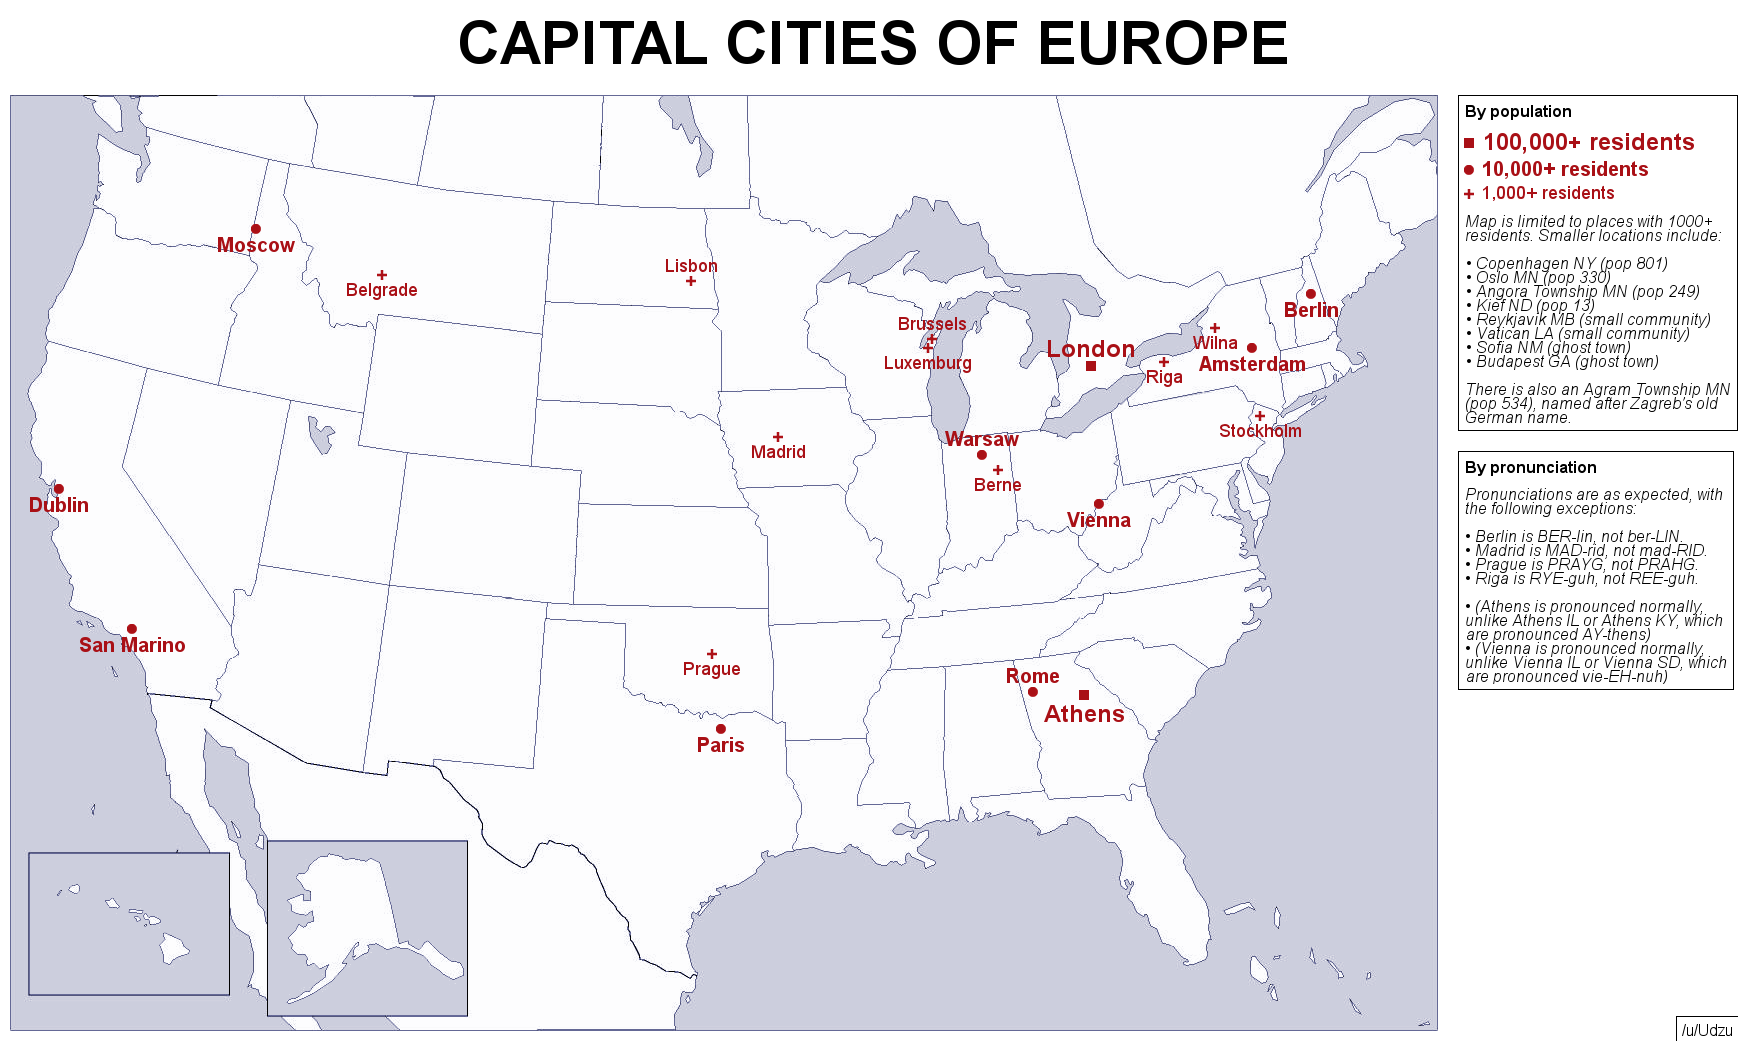 European Capital Cities (US Edition) – Earthly Mission